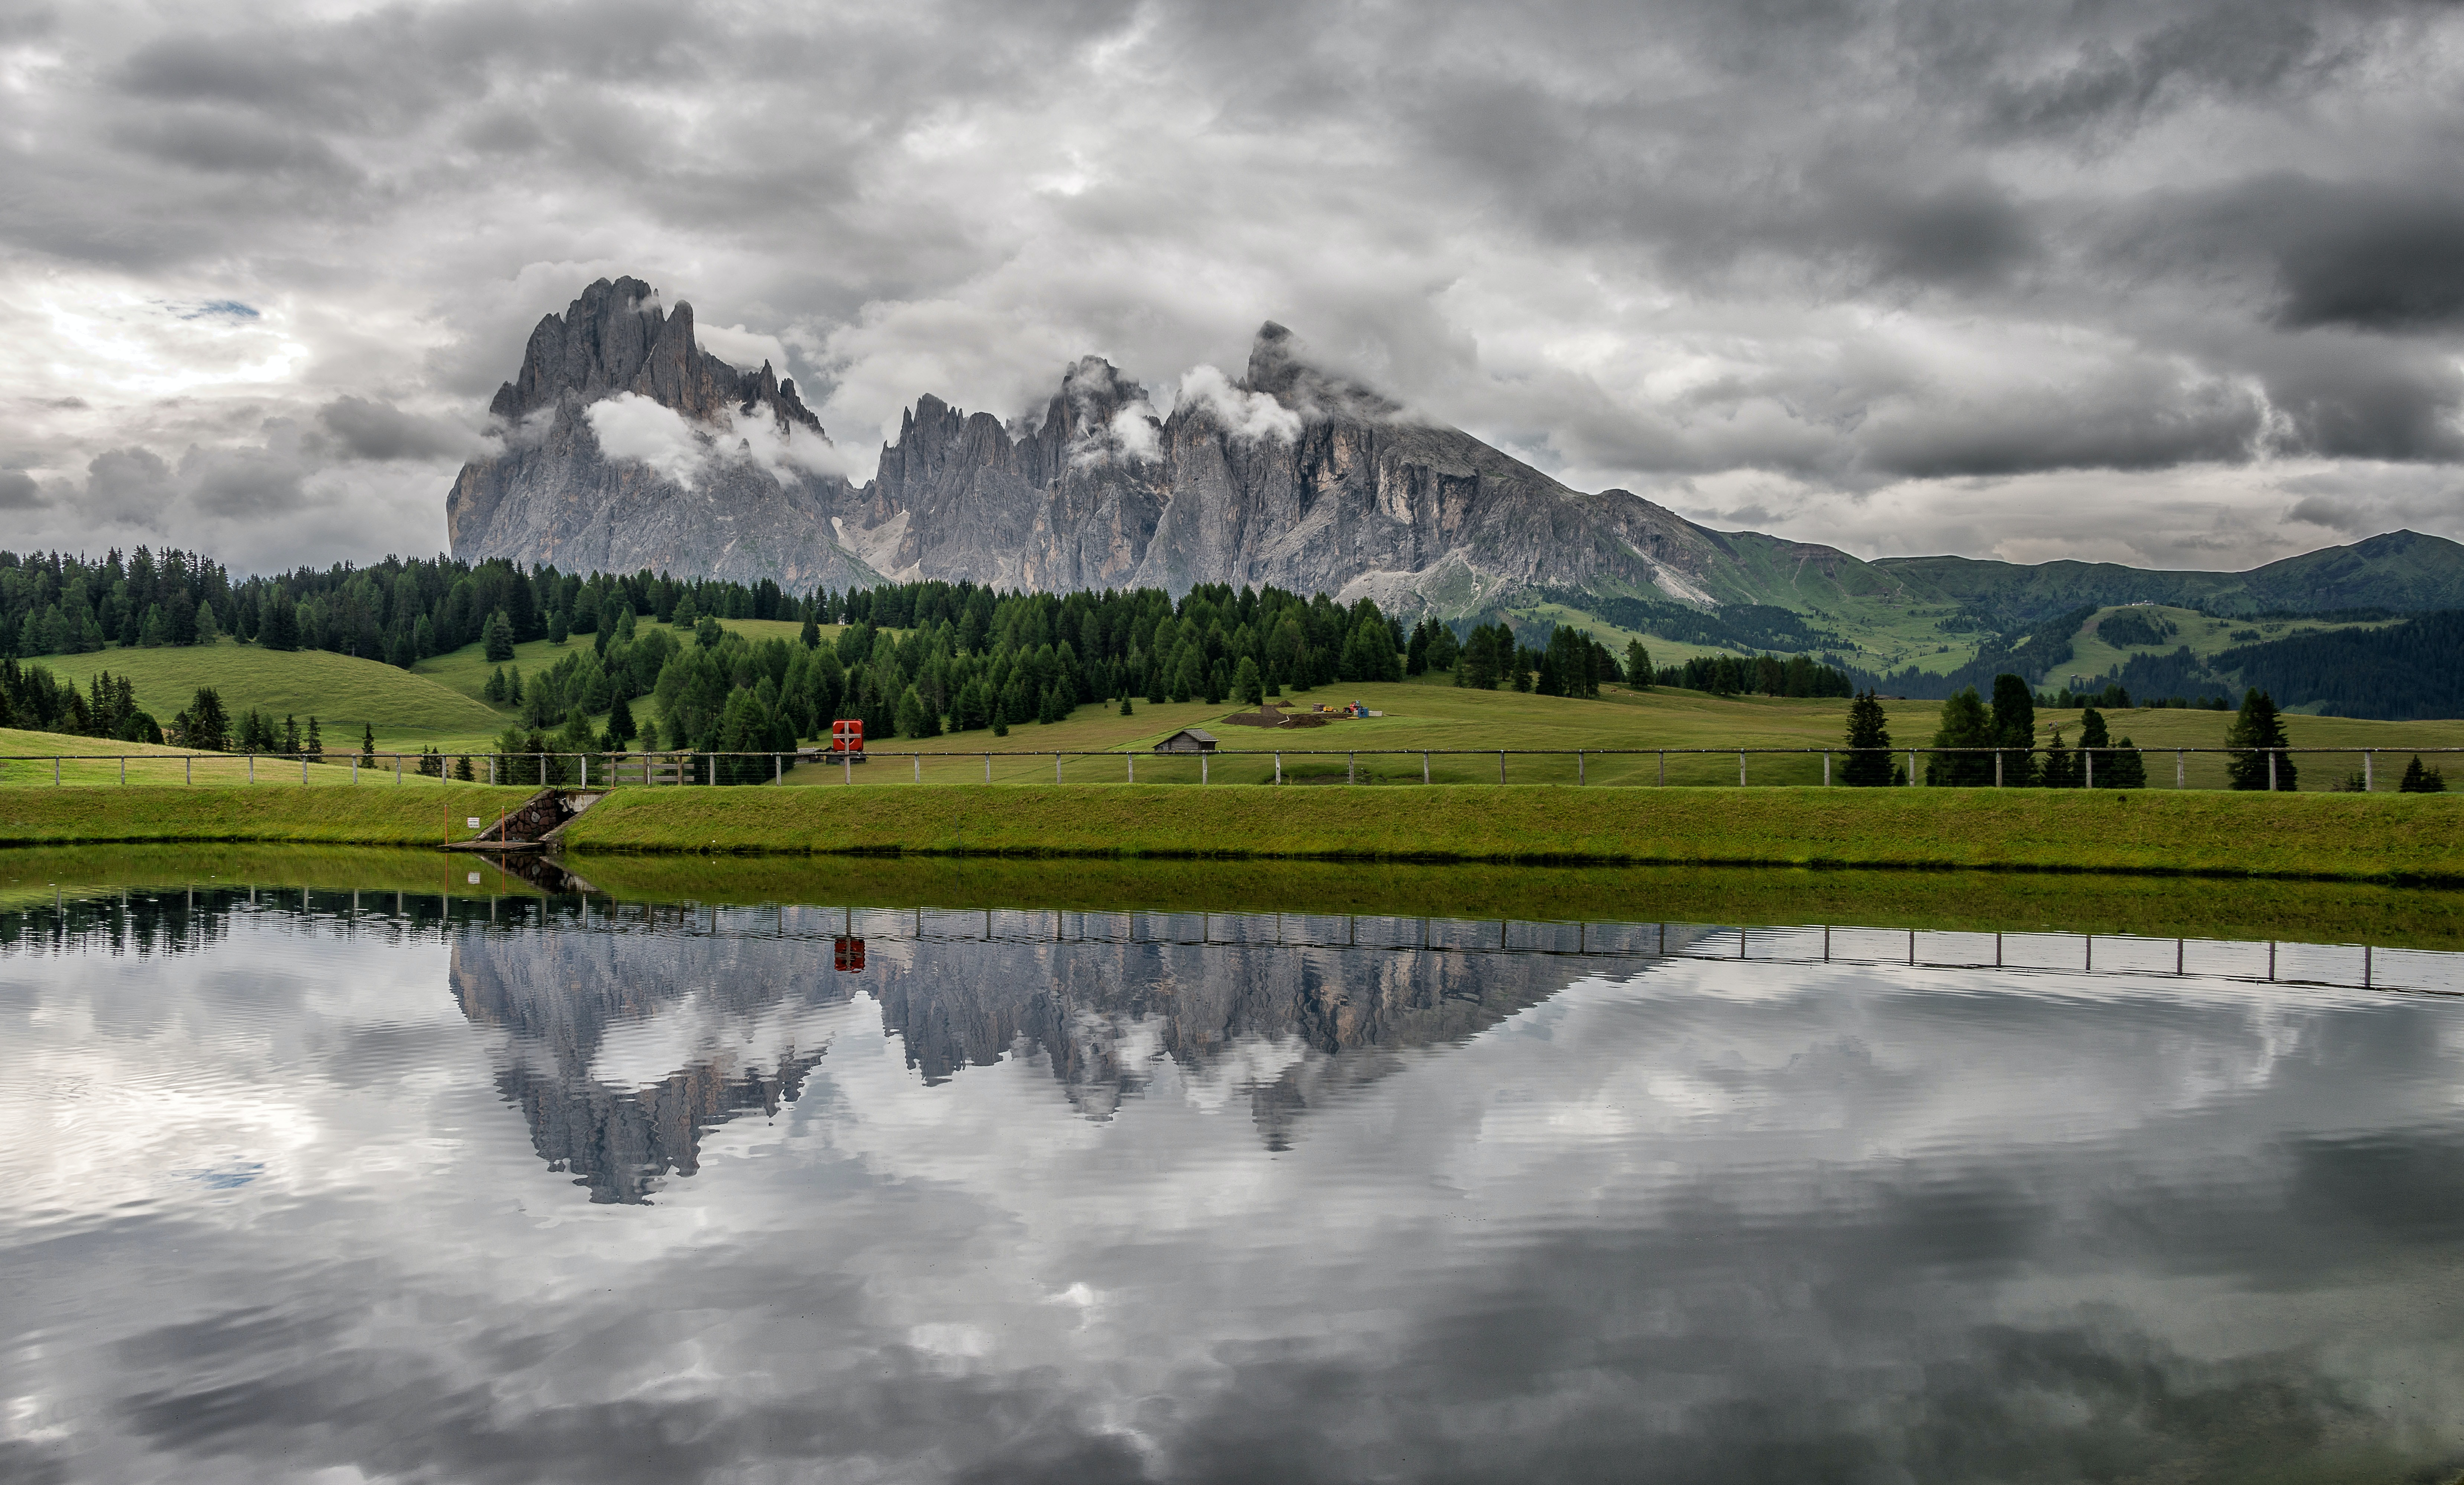 A beautiful enclosed lake with tall granite peaks on the horizon